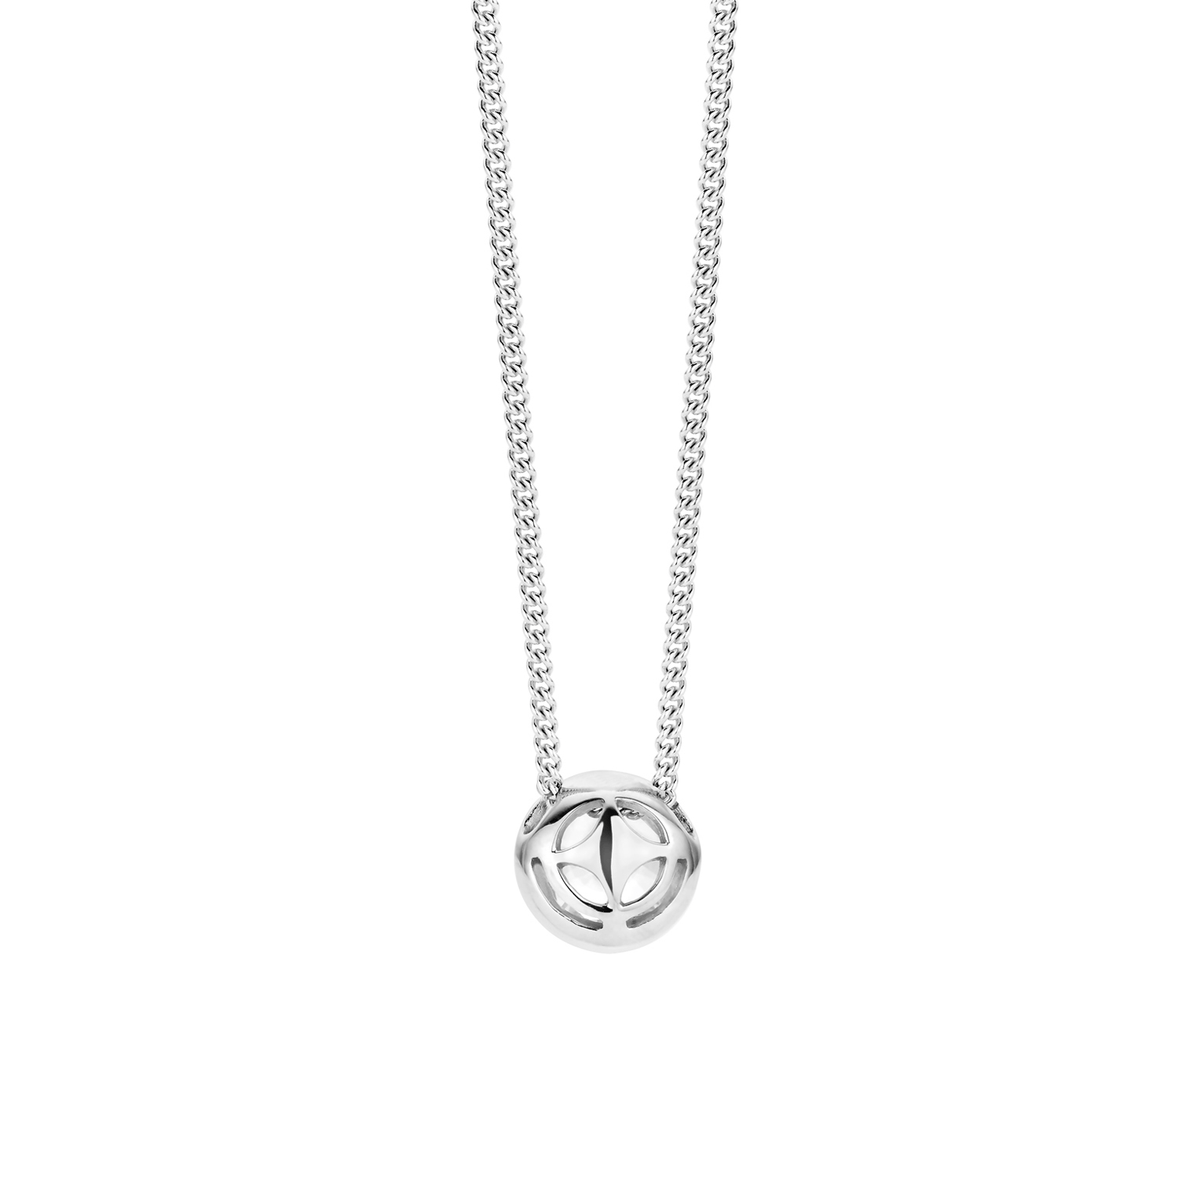 TI SENTO - Milano Necklace 3807ZI